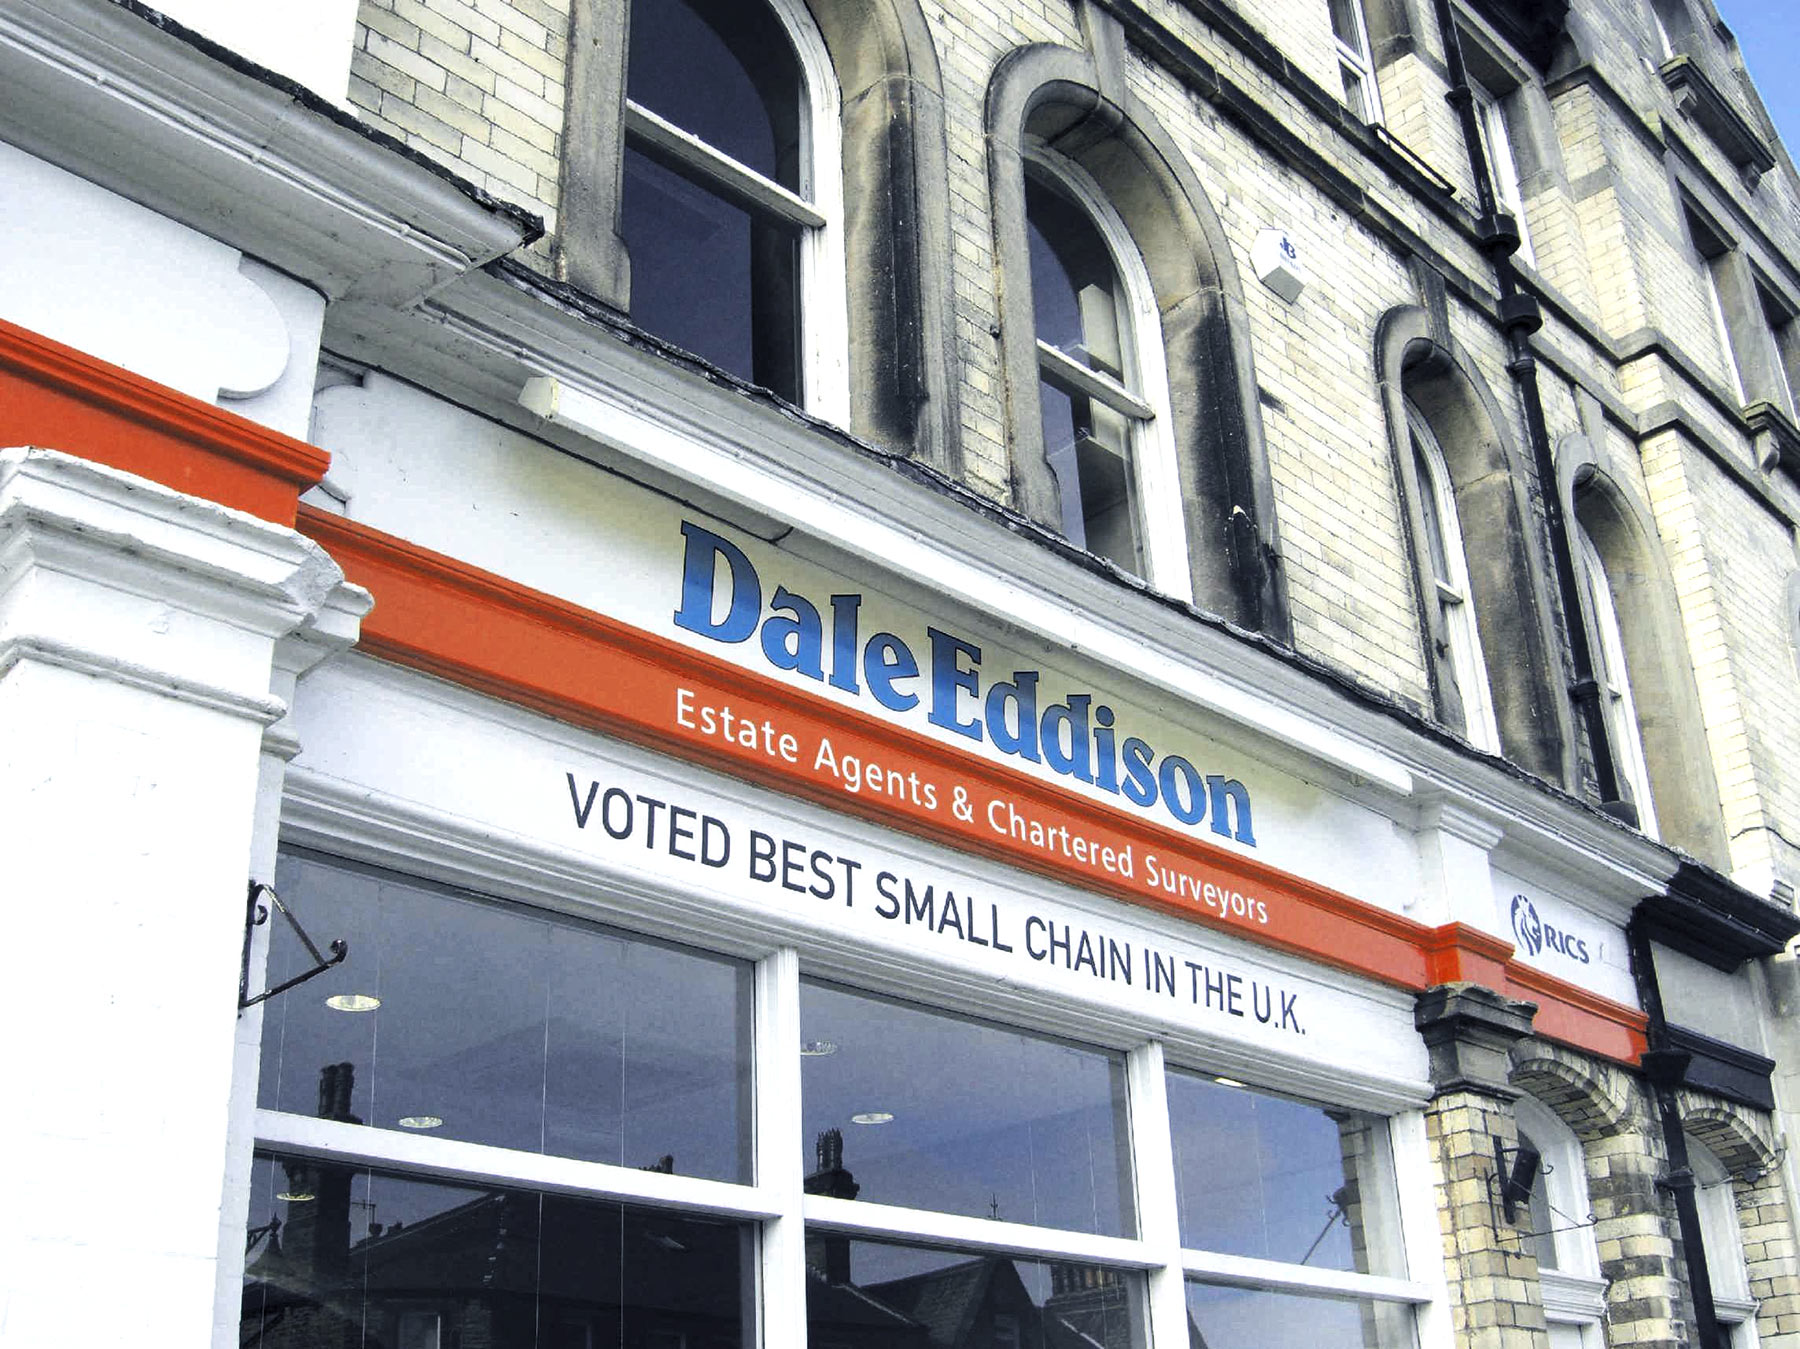 Dale Eddison's high street retail sign